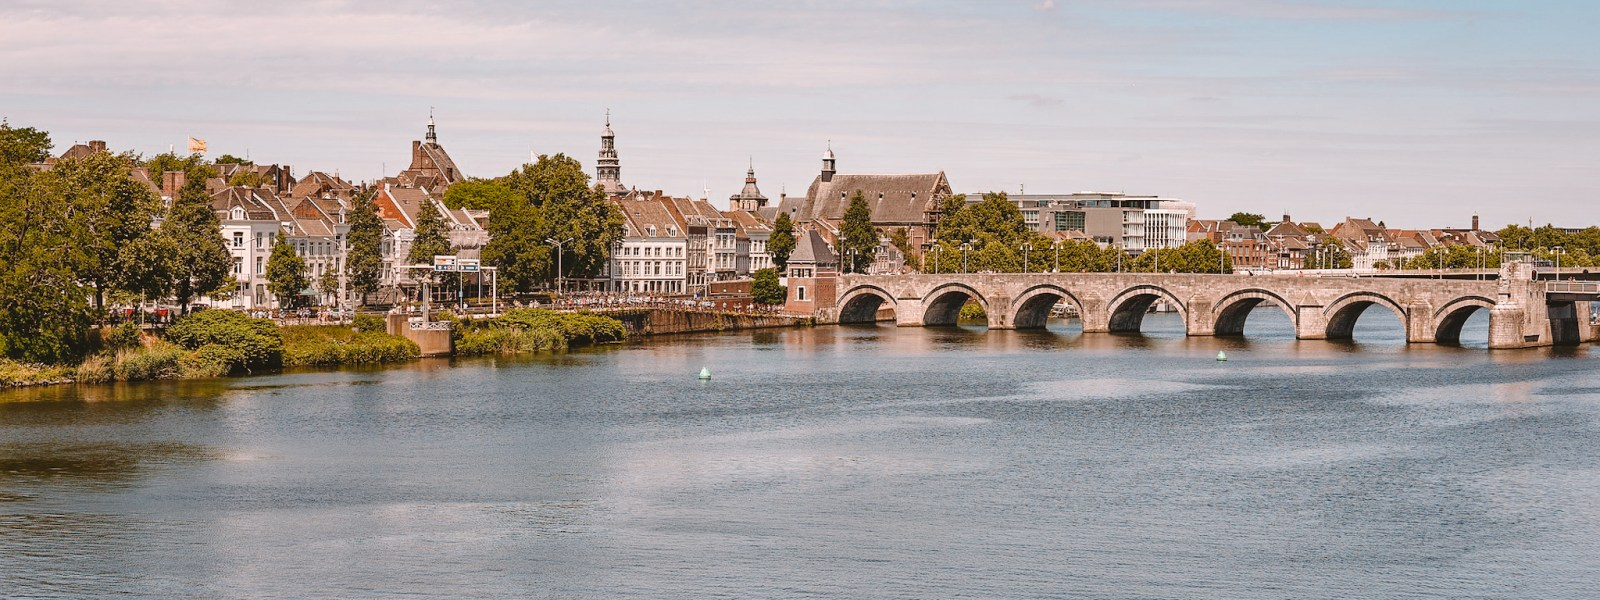 Tips Maastricht: 30 leukste hotels, restaurants en shops